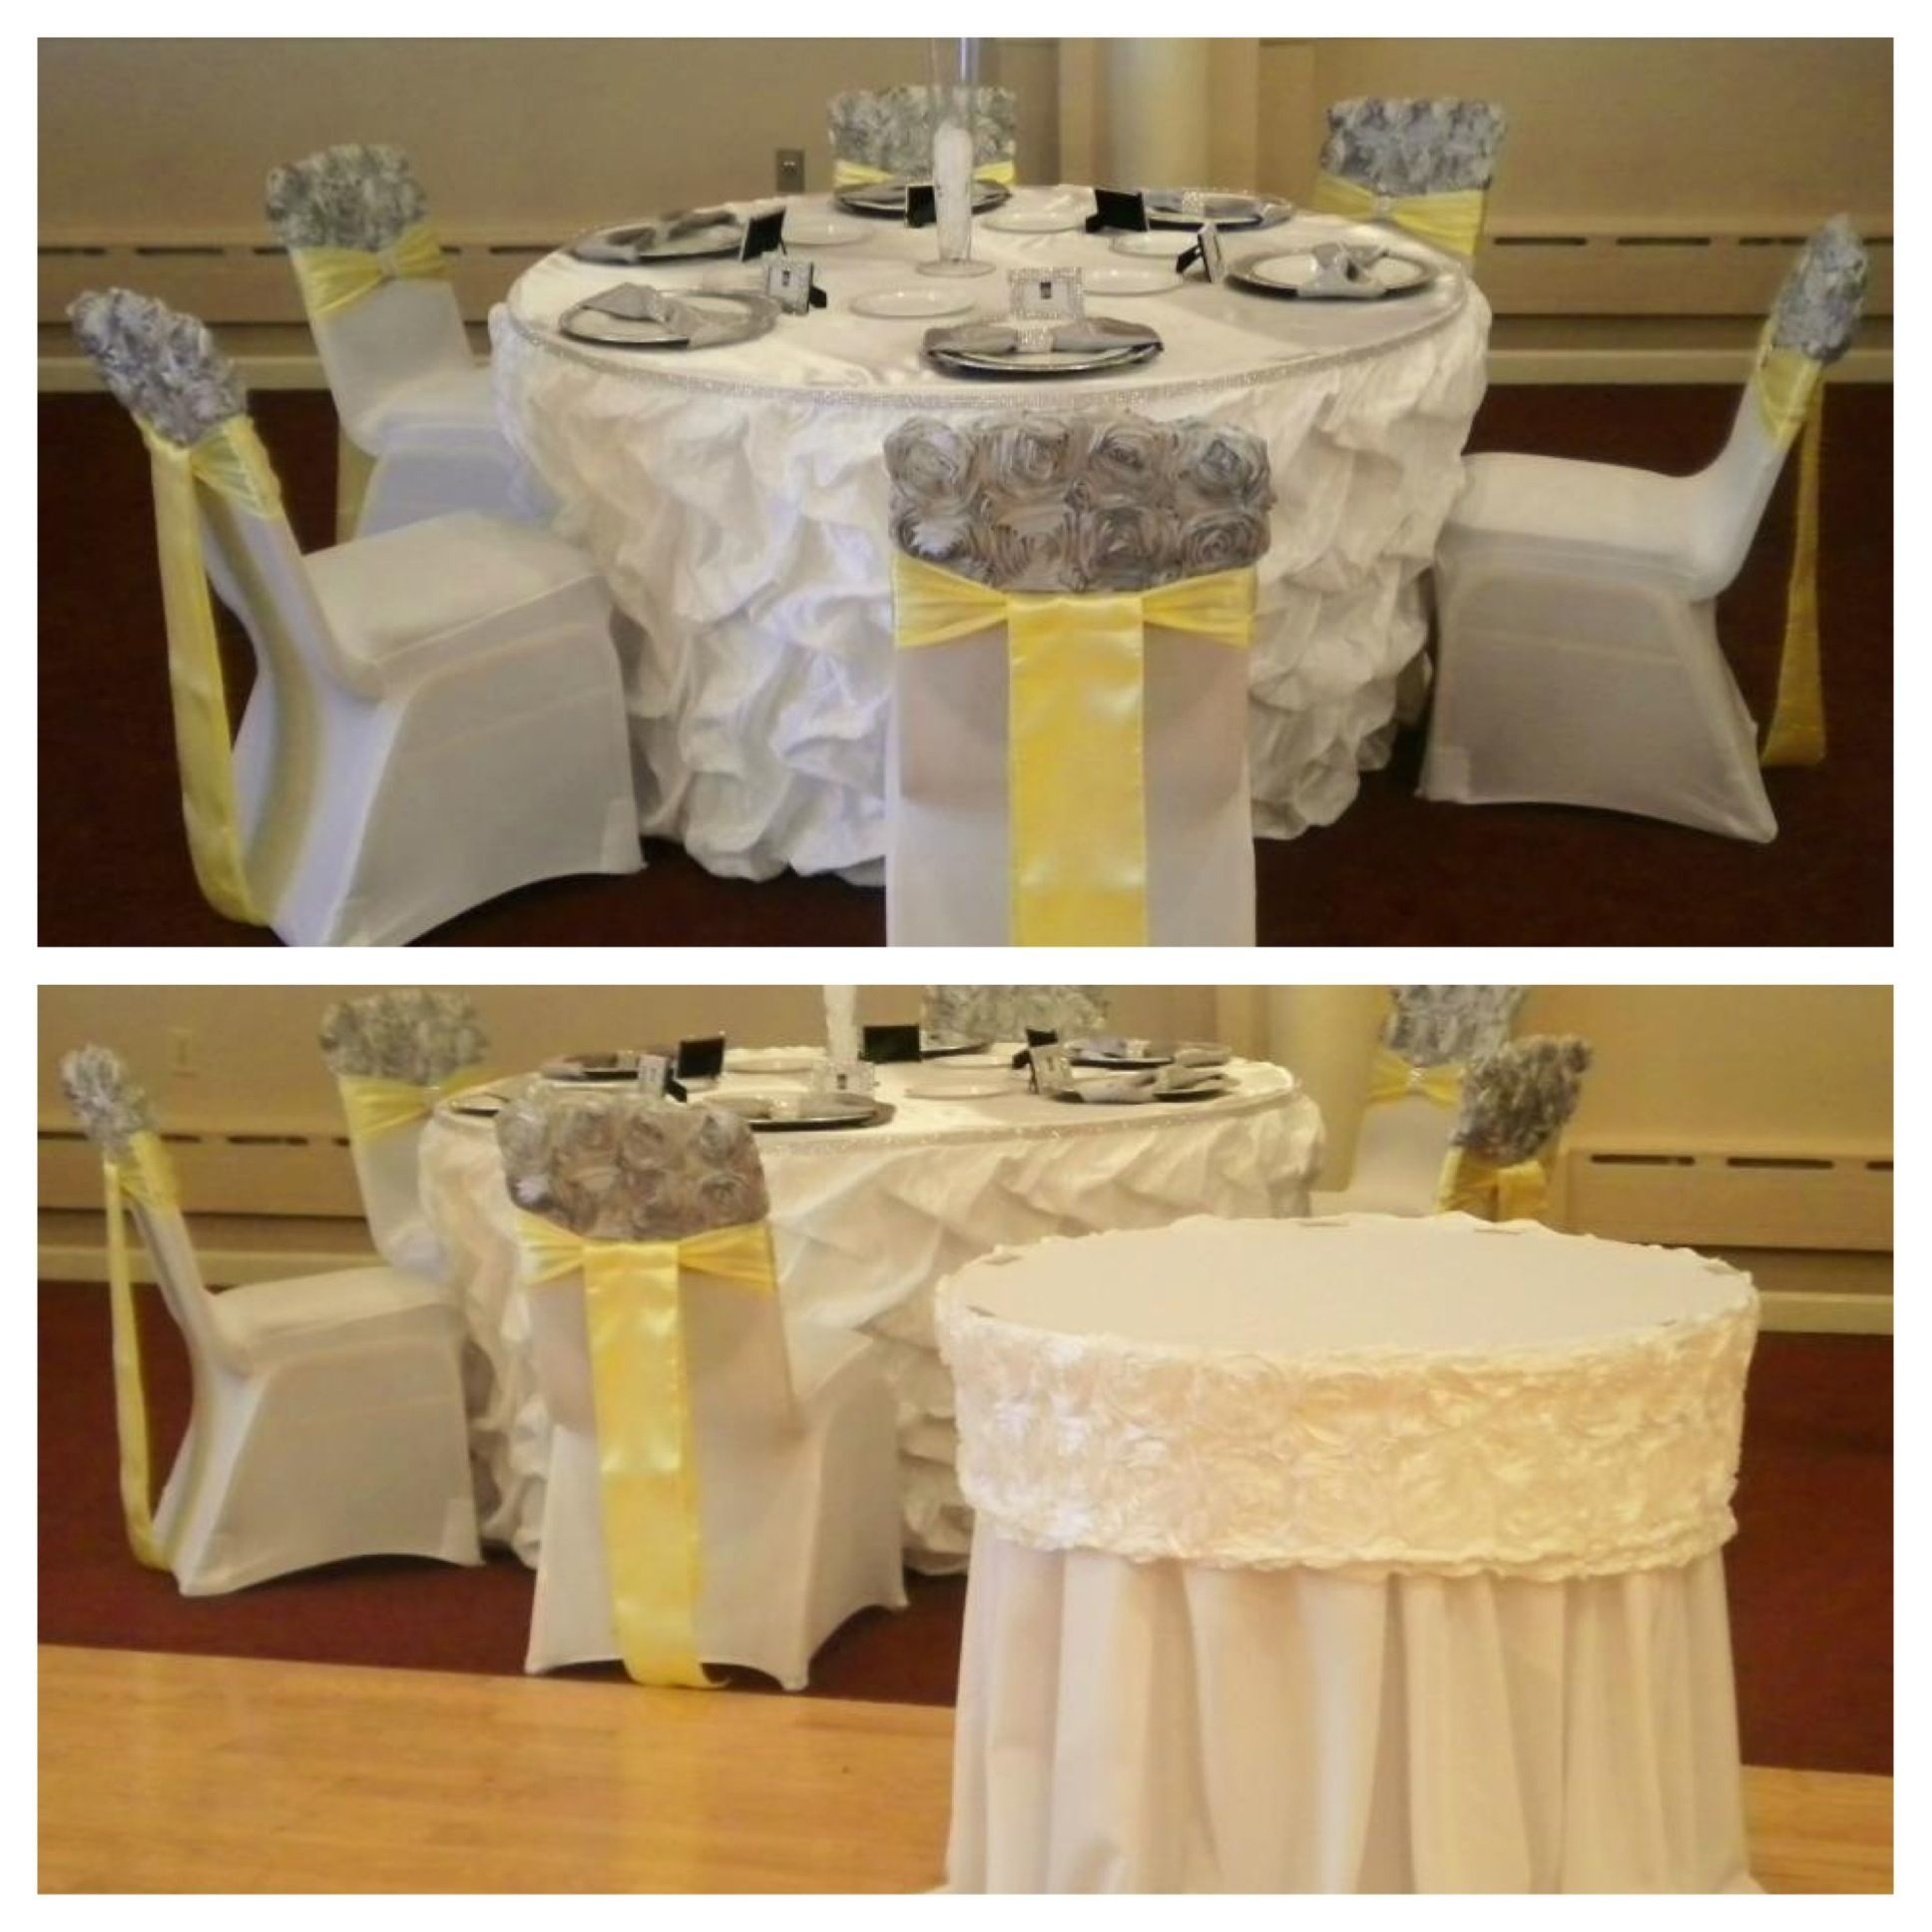 Paper Chair Covers For Weddings Step Stool Plans Couture Table Skirt Rosette Caps Bling